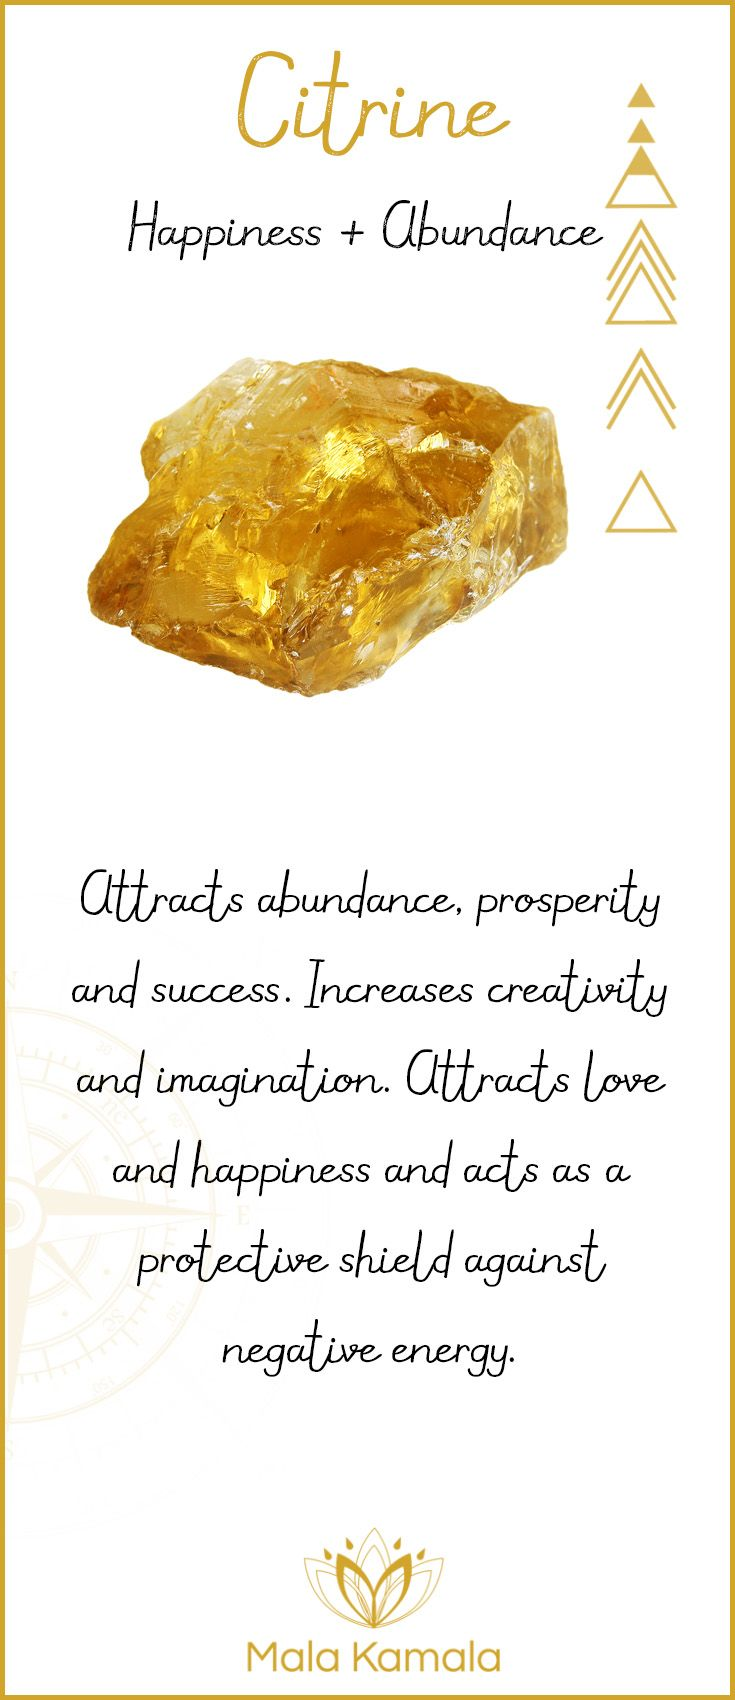 Citrine ~ Happiness & Abundance